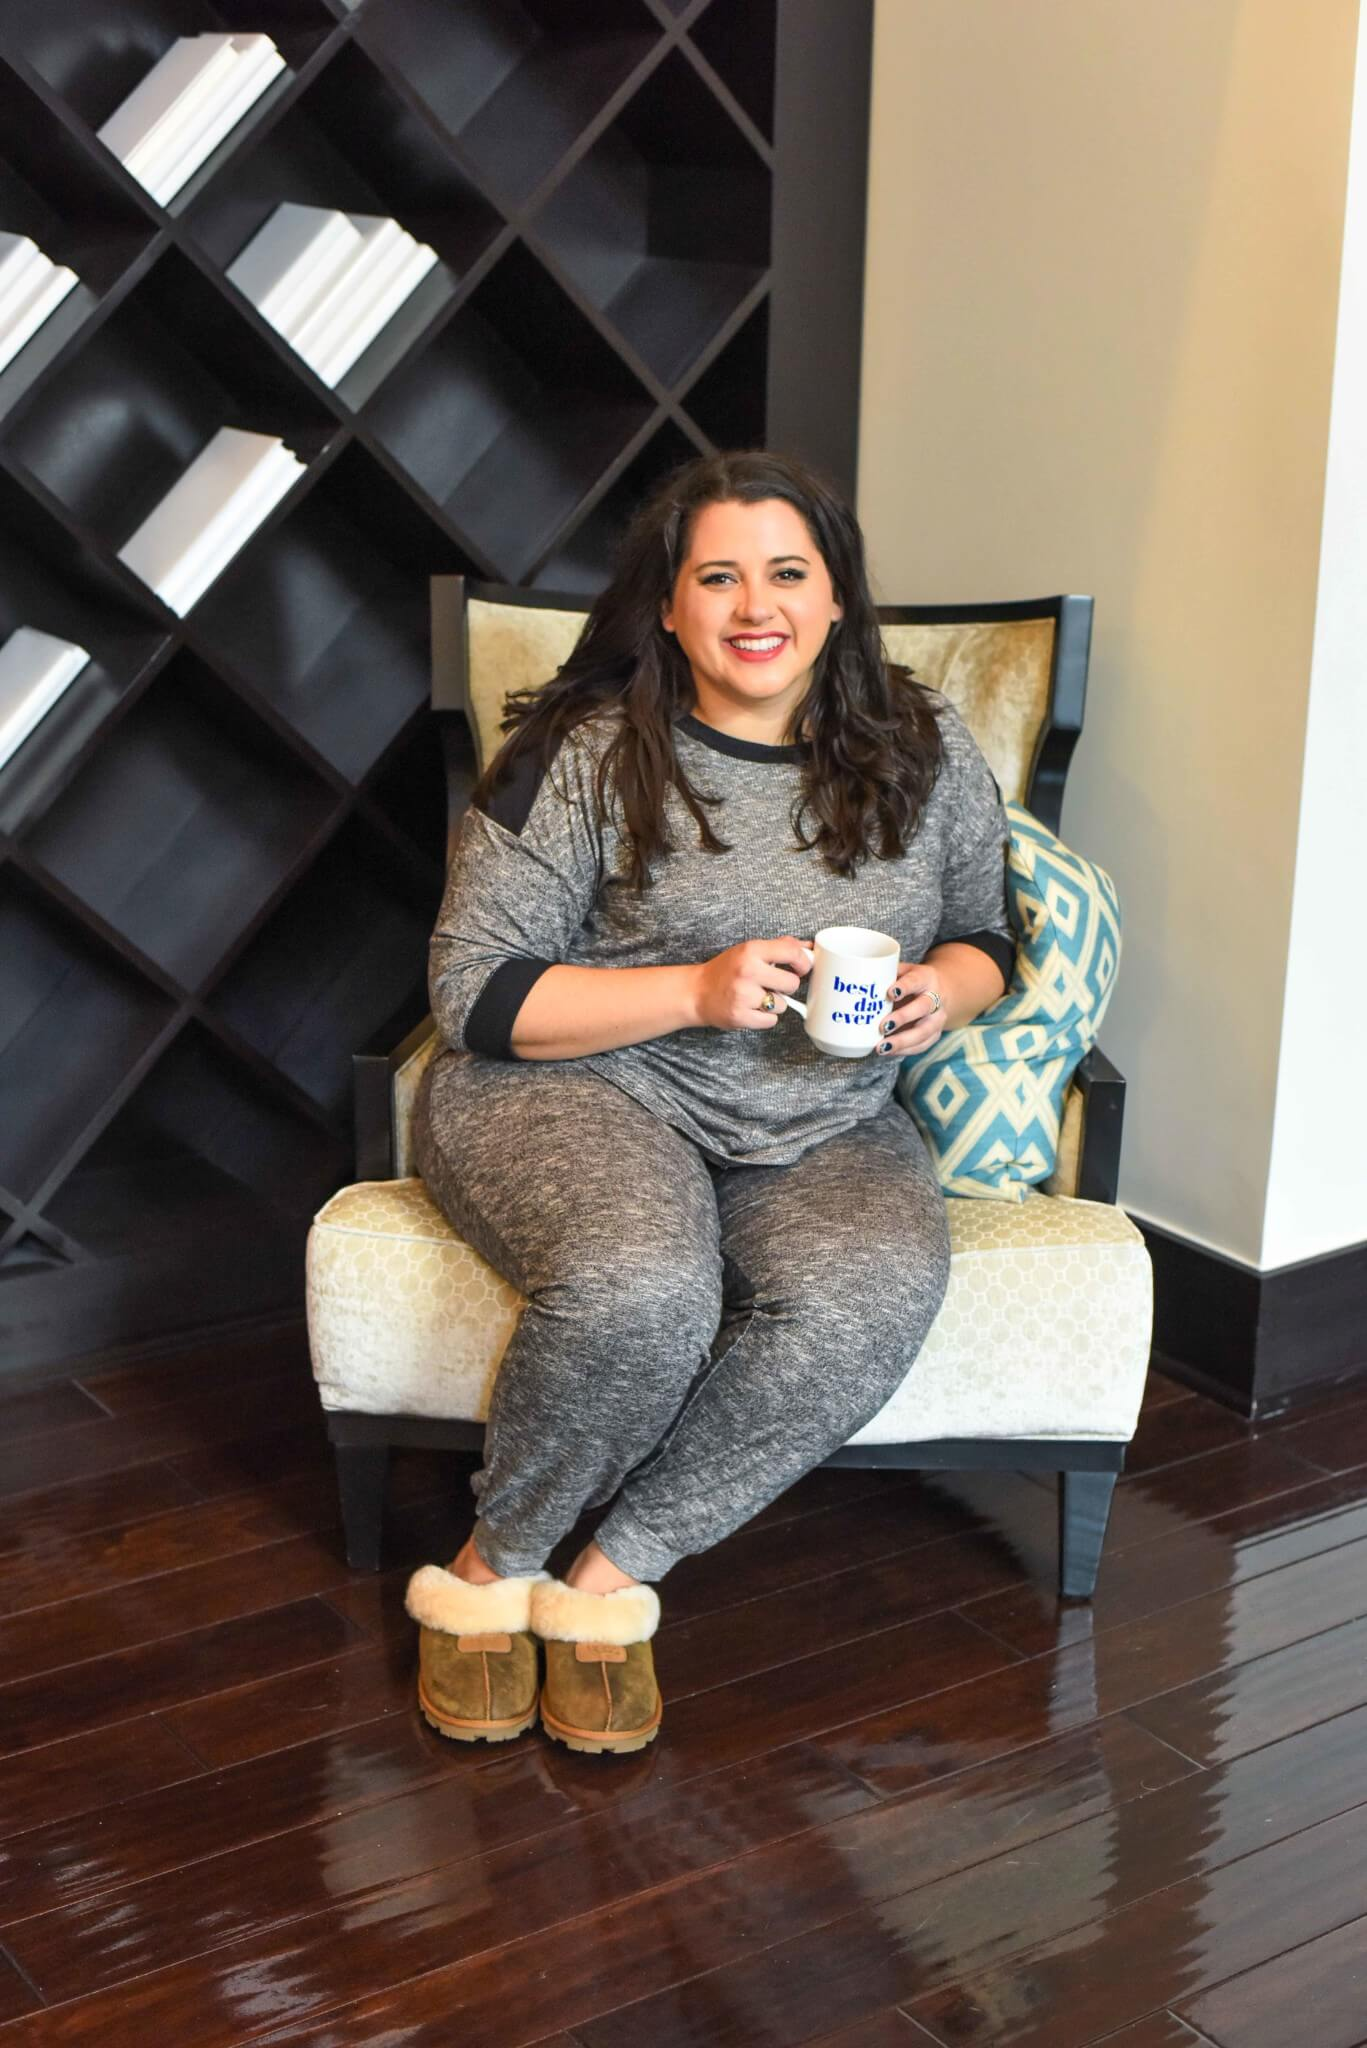 Enjoying a cup of coffee is one of the best ways to unwind on the weekend. Doing so in a great pair of PJs is the icing on the cake. I'm sharing why I love shopping at Kohl's for plus size pajamas. #plussize